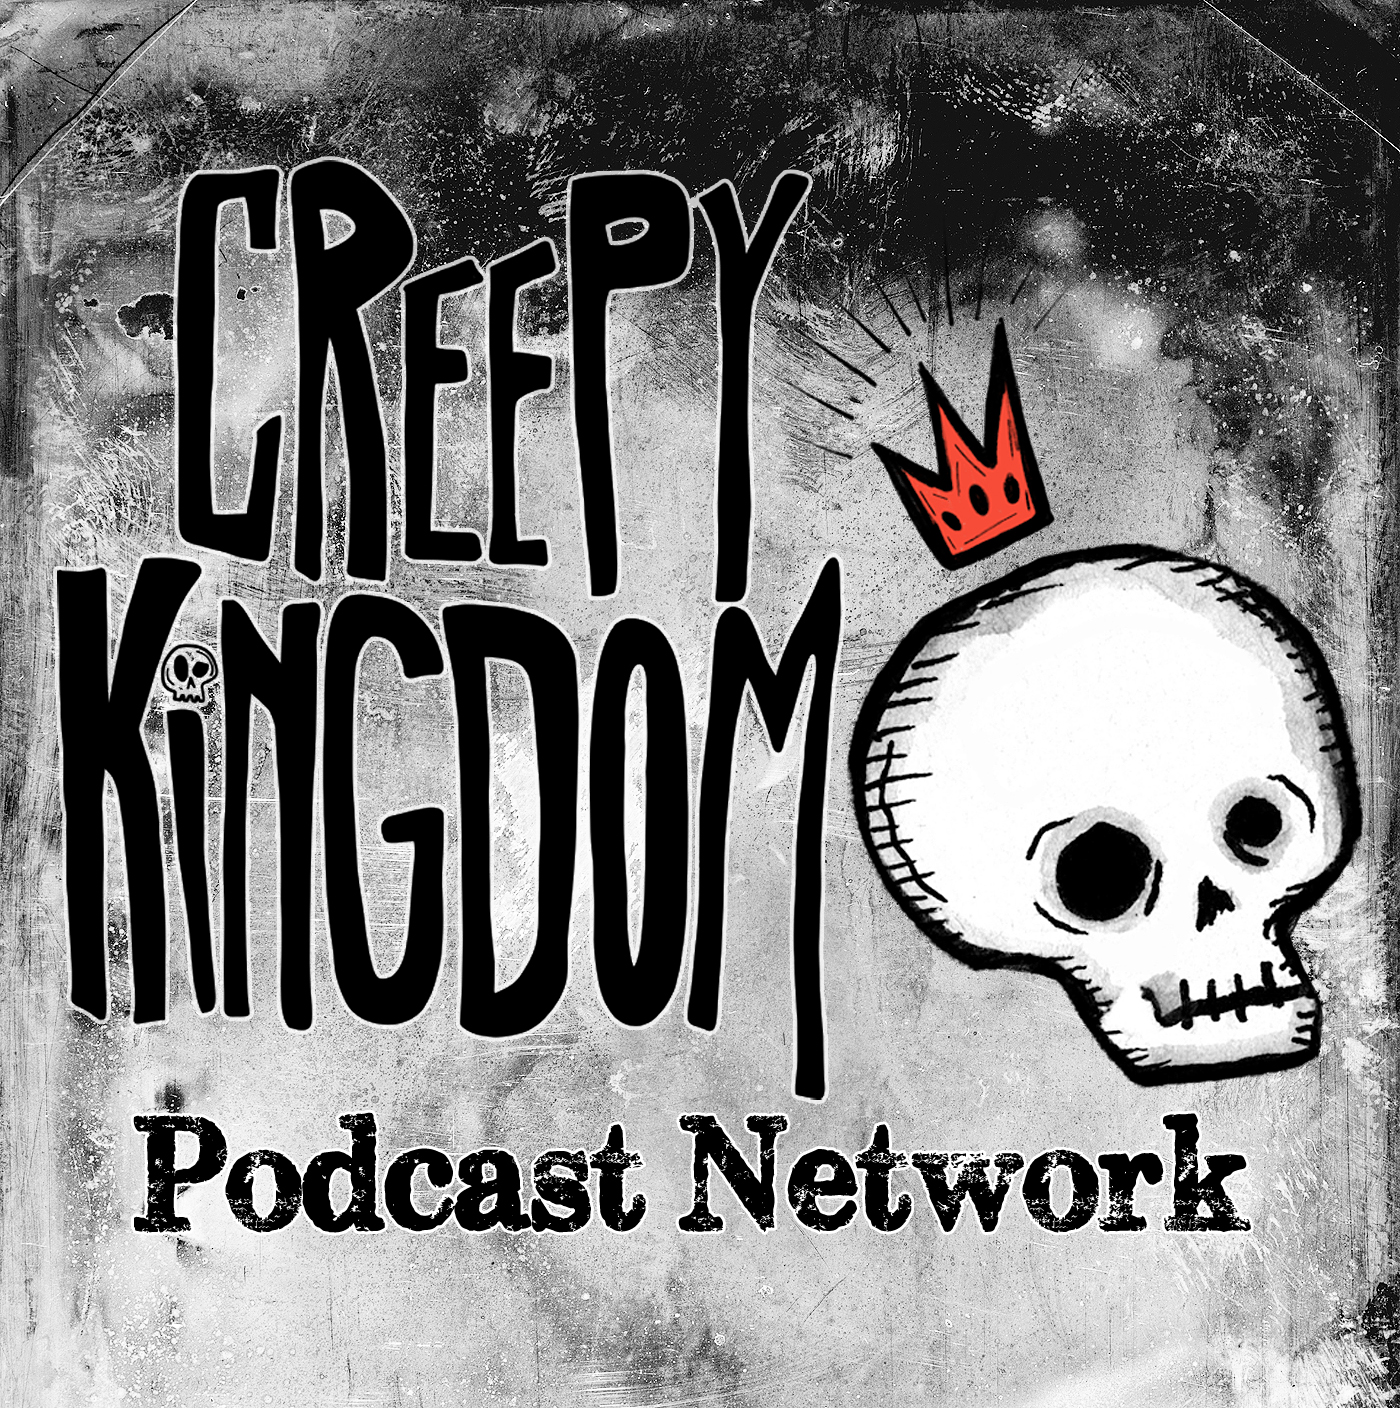 Creepy Kingdom Podcast Network